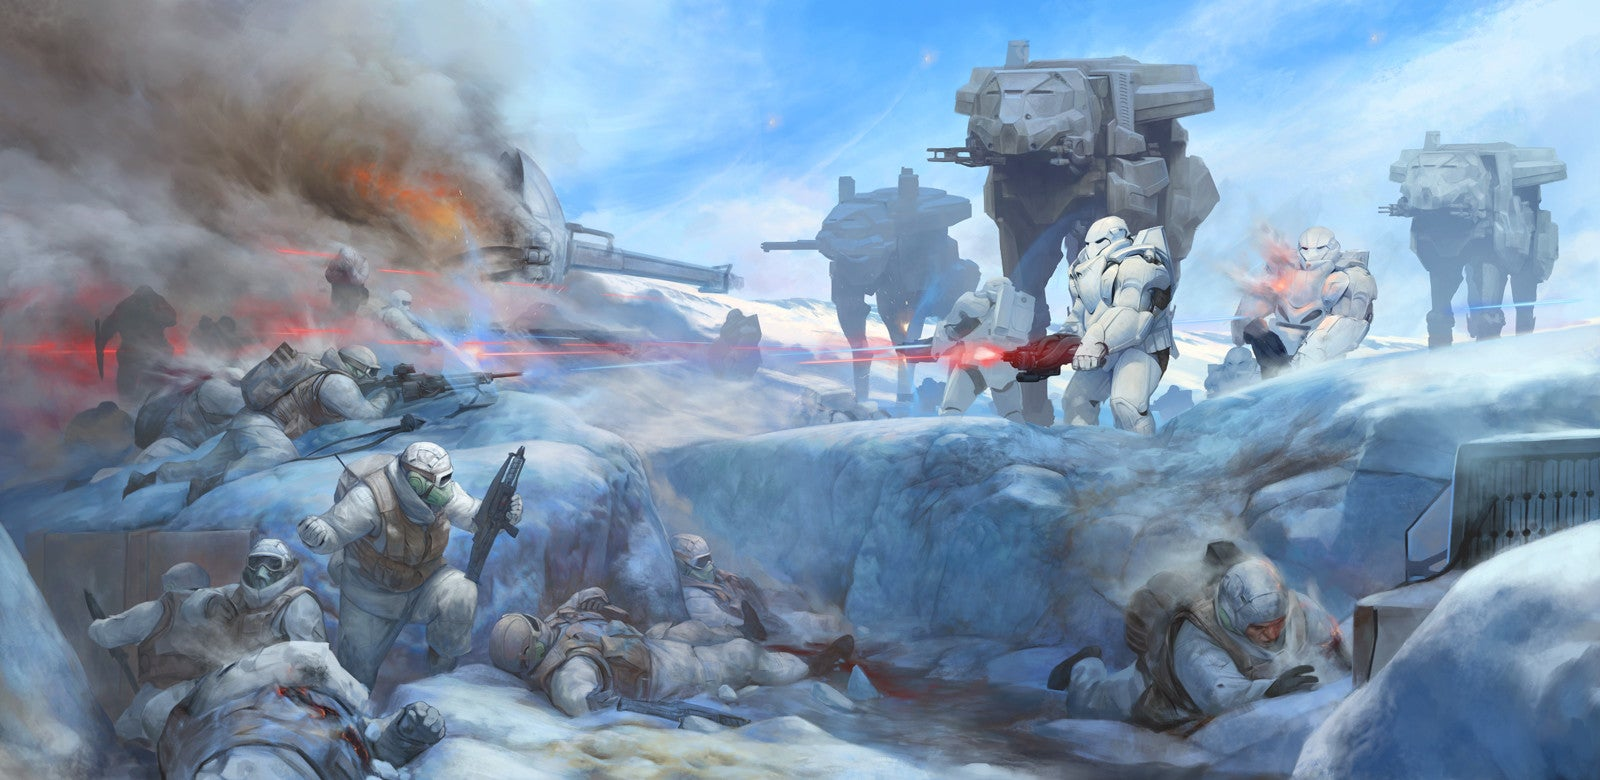 Wait, That's Not How I Remember The Battle Of Hoth...